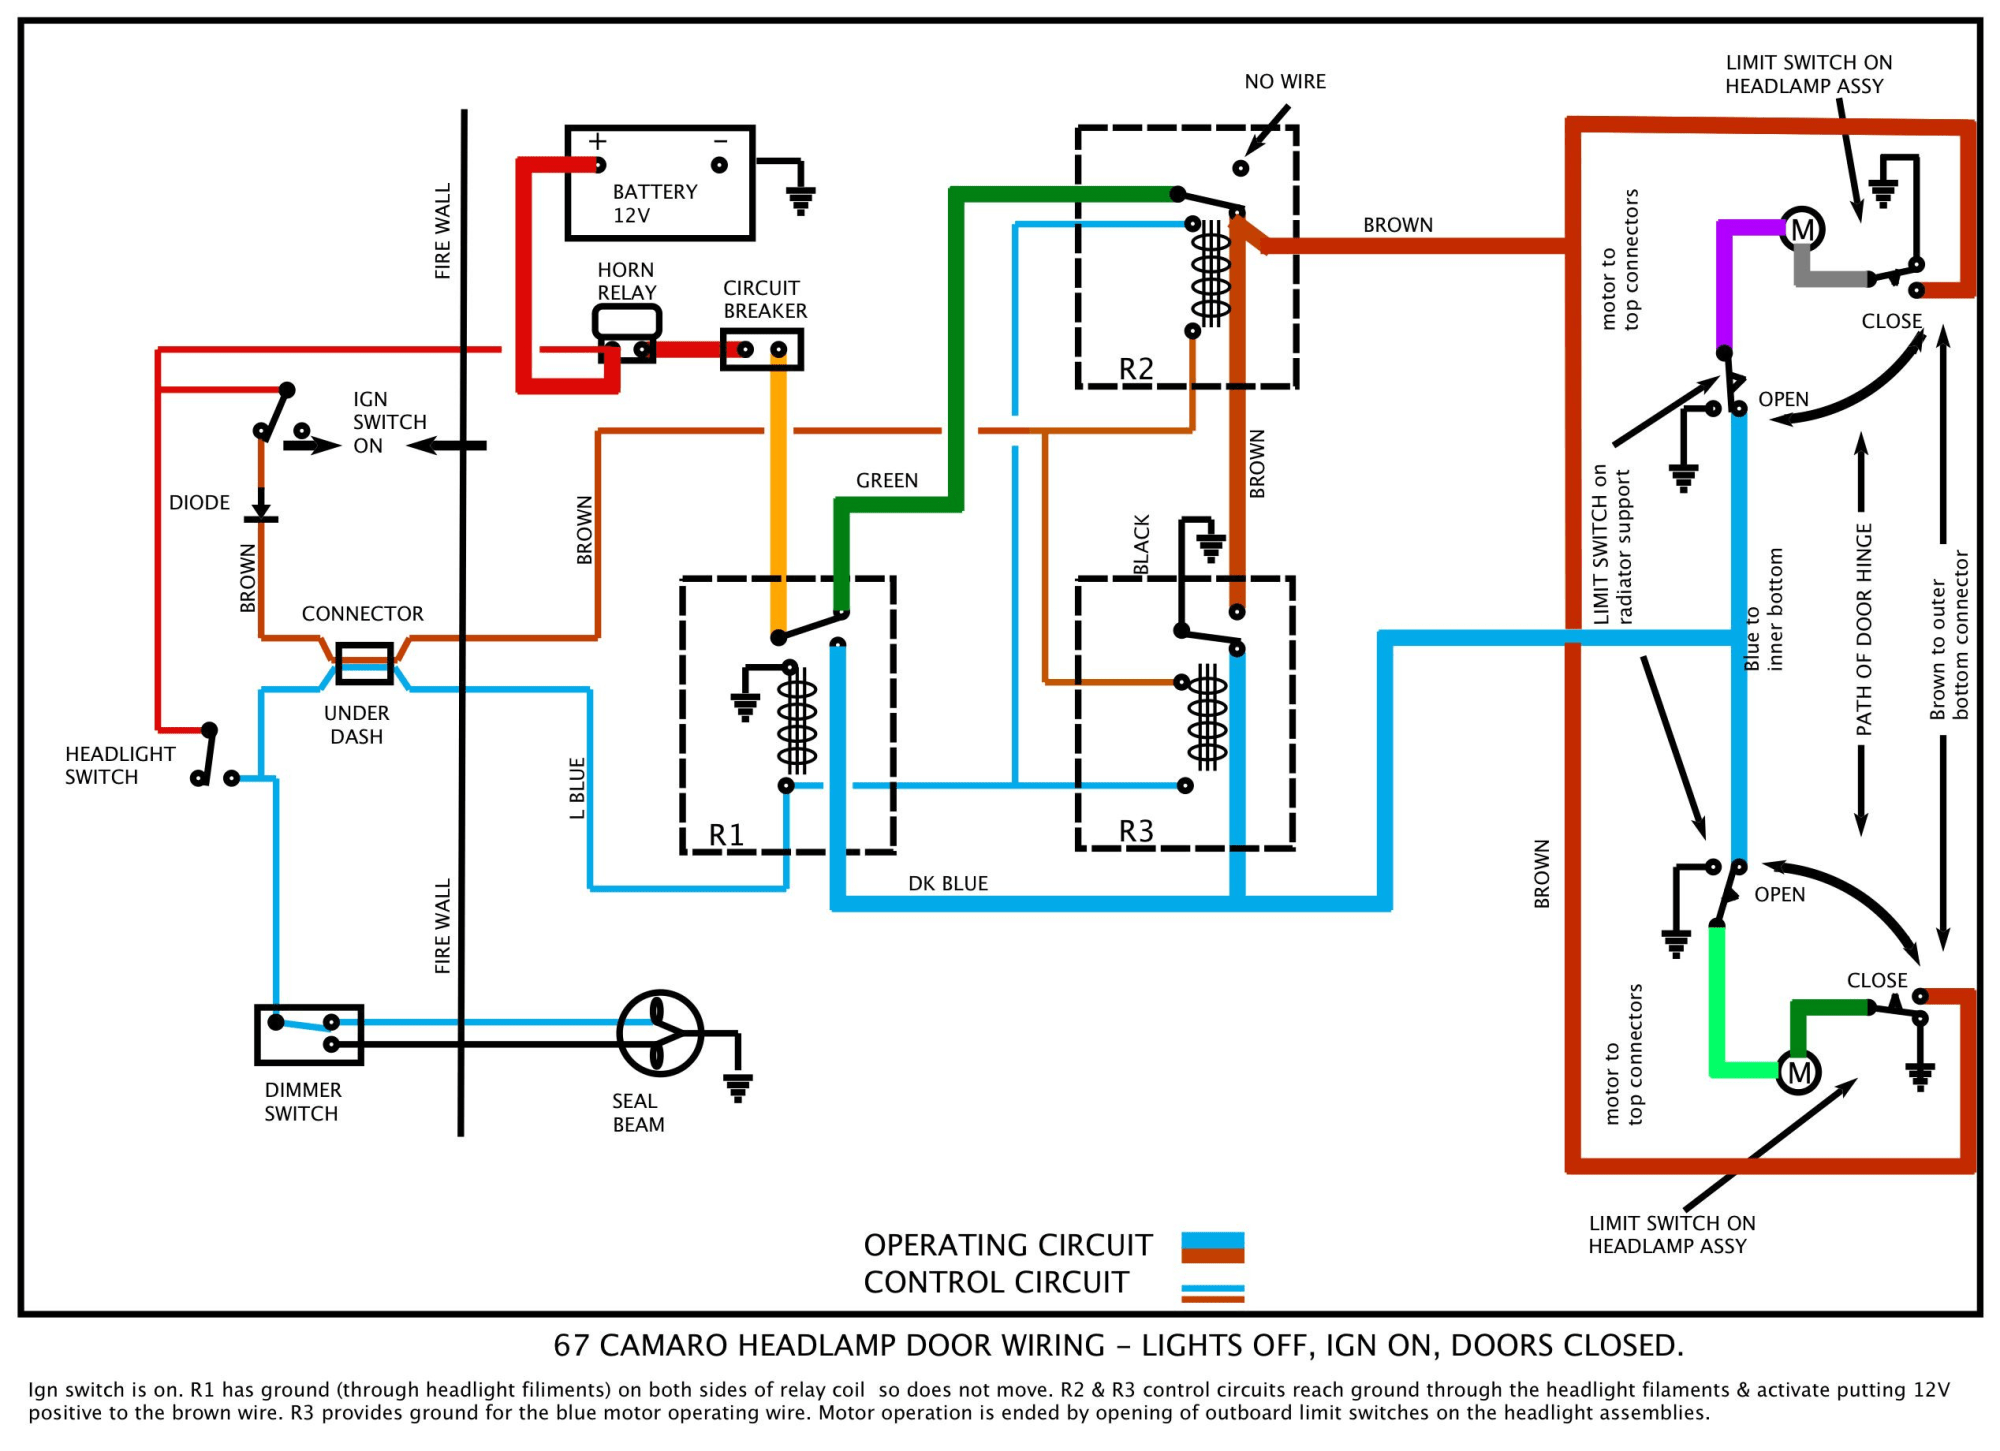 hight resolution of 2010 camaro ac schematic wiring diagram schema2010 camaro wiring harness diagram schema diagram database 2010 camaro